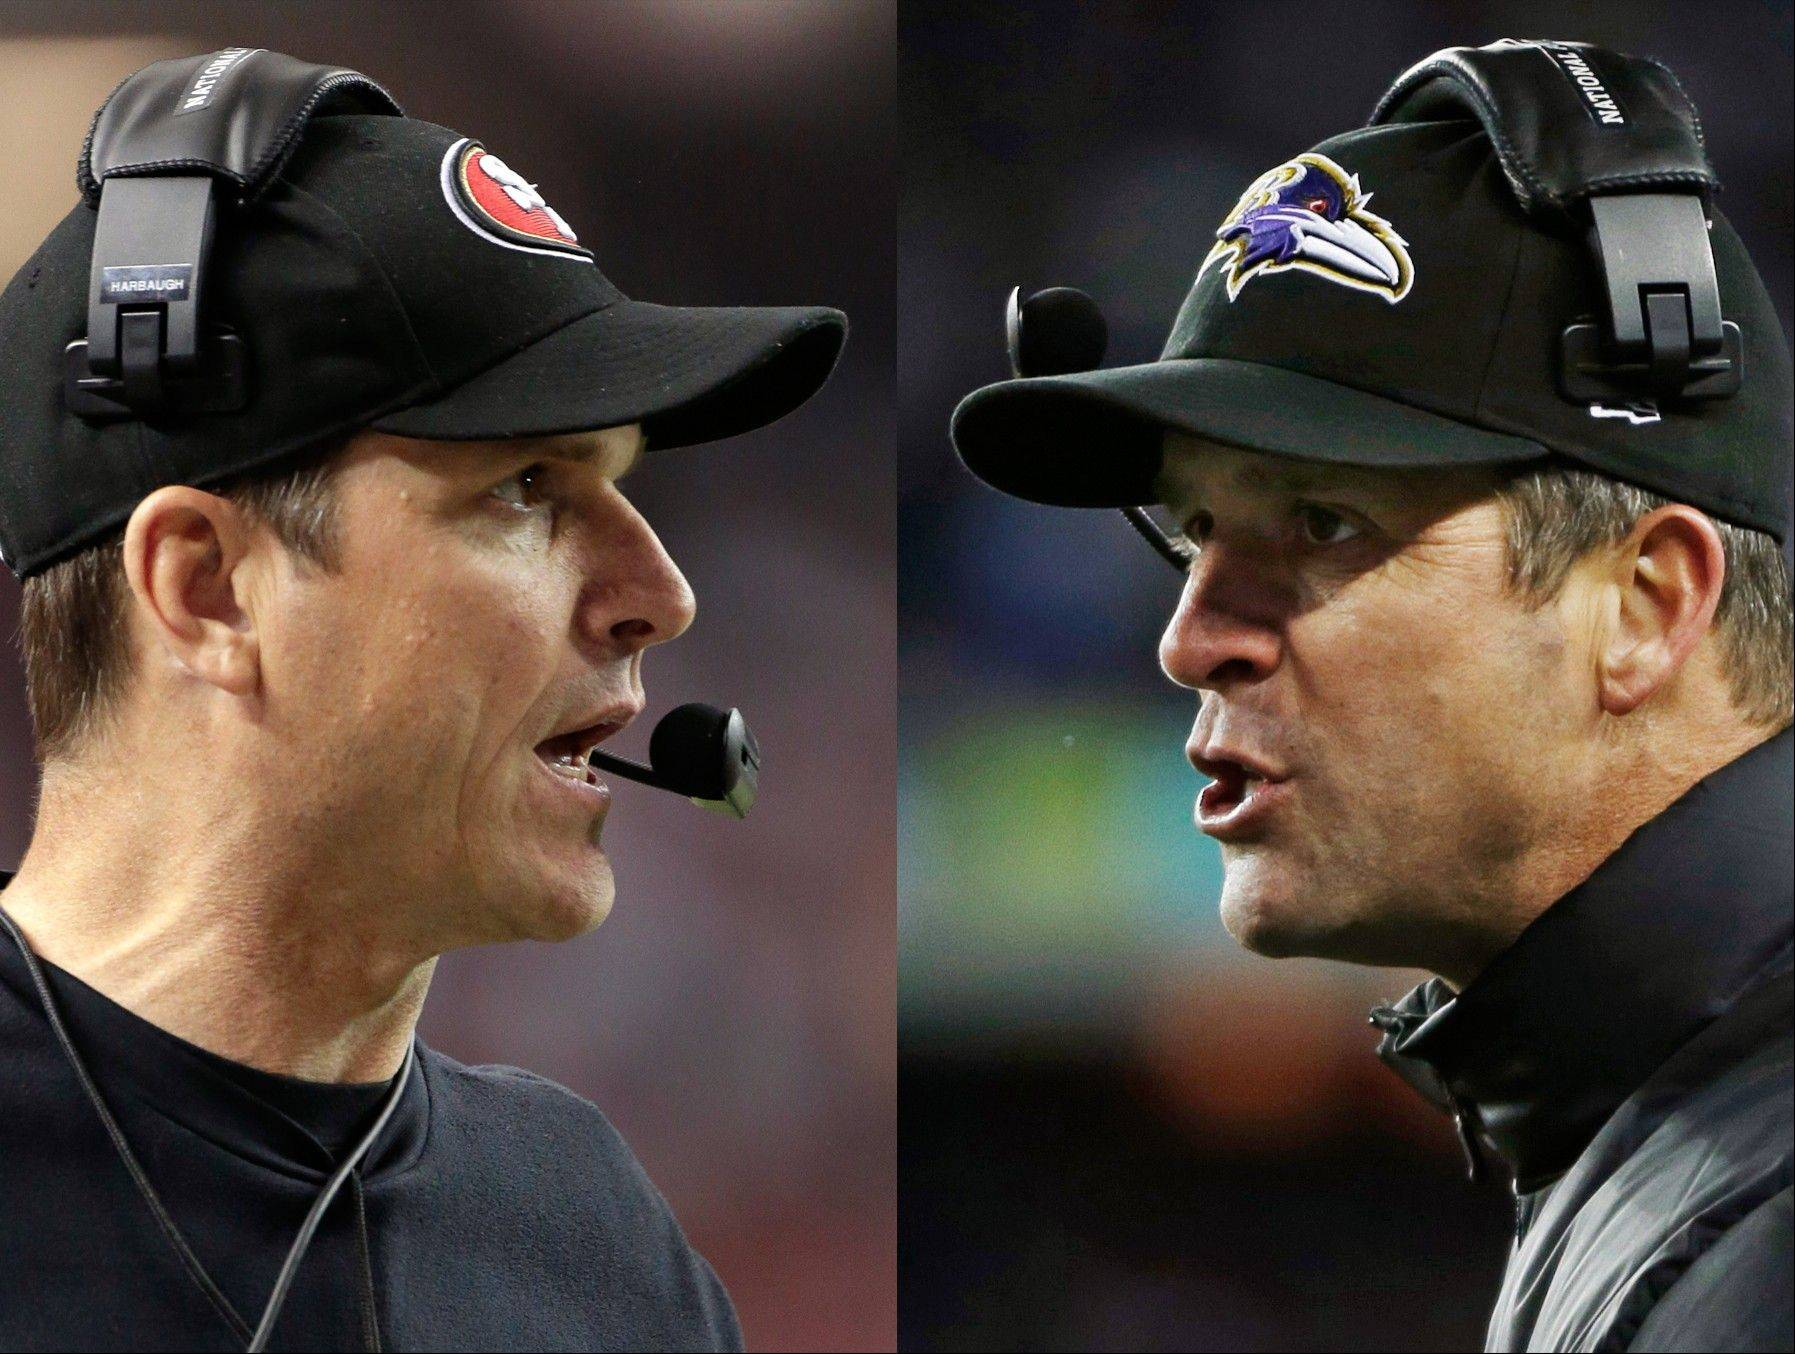 San Francisco 49ers head coach Jim Harbaugh, left, in Atlanta, and Baltimore Ravens head coach John Harbaugh in Foxborough, Mass., during their NFL football conference championship games. Get ready for the Brother Bowl -- it'll be Harbaugh vs. Harbaugh when Big Bro John's Baltimore Ravens (13-6) play Little Bro Jim's San Francisco 49ers (13-4-1) in the Super Bowl at New Orleans in two weeks.